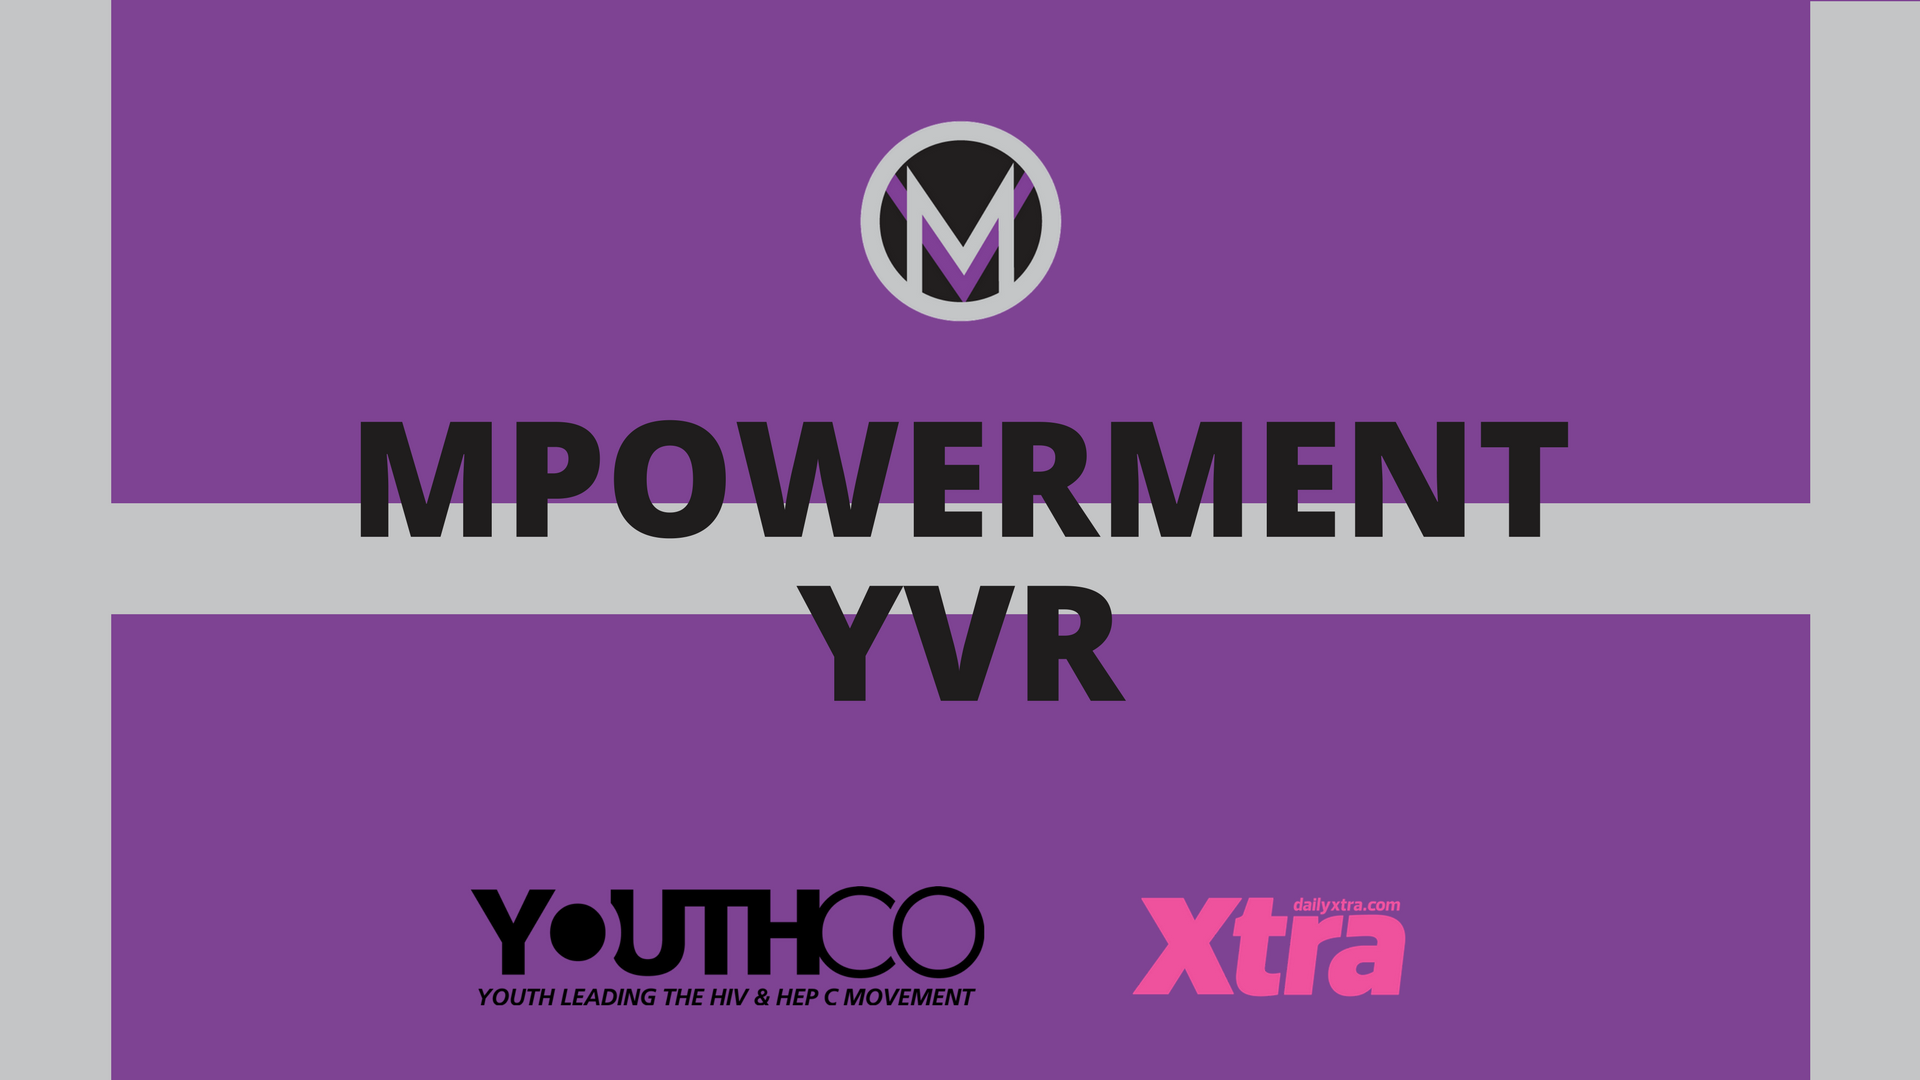 Facebook_Cover_Mpowerment_YVR_NEW_with_Xtra.png